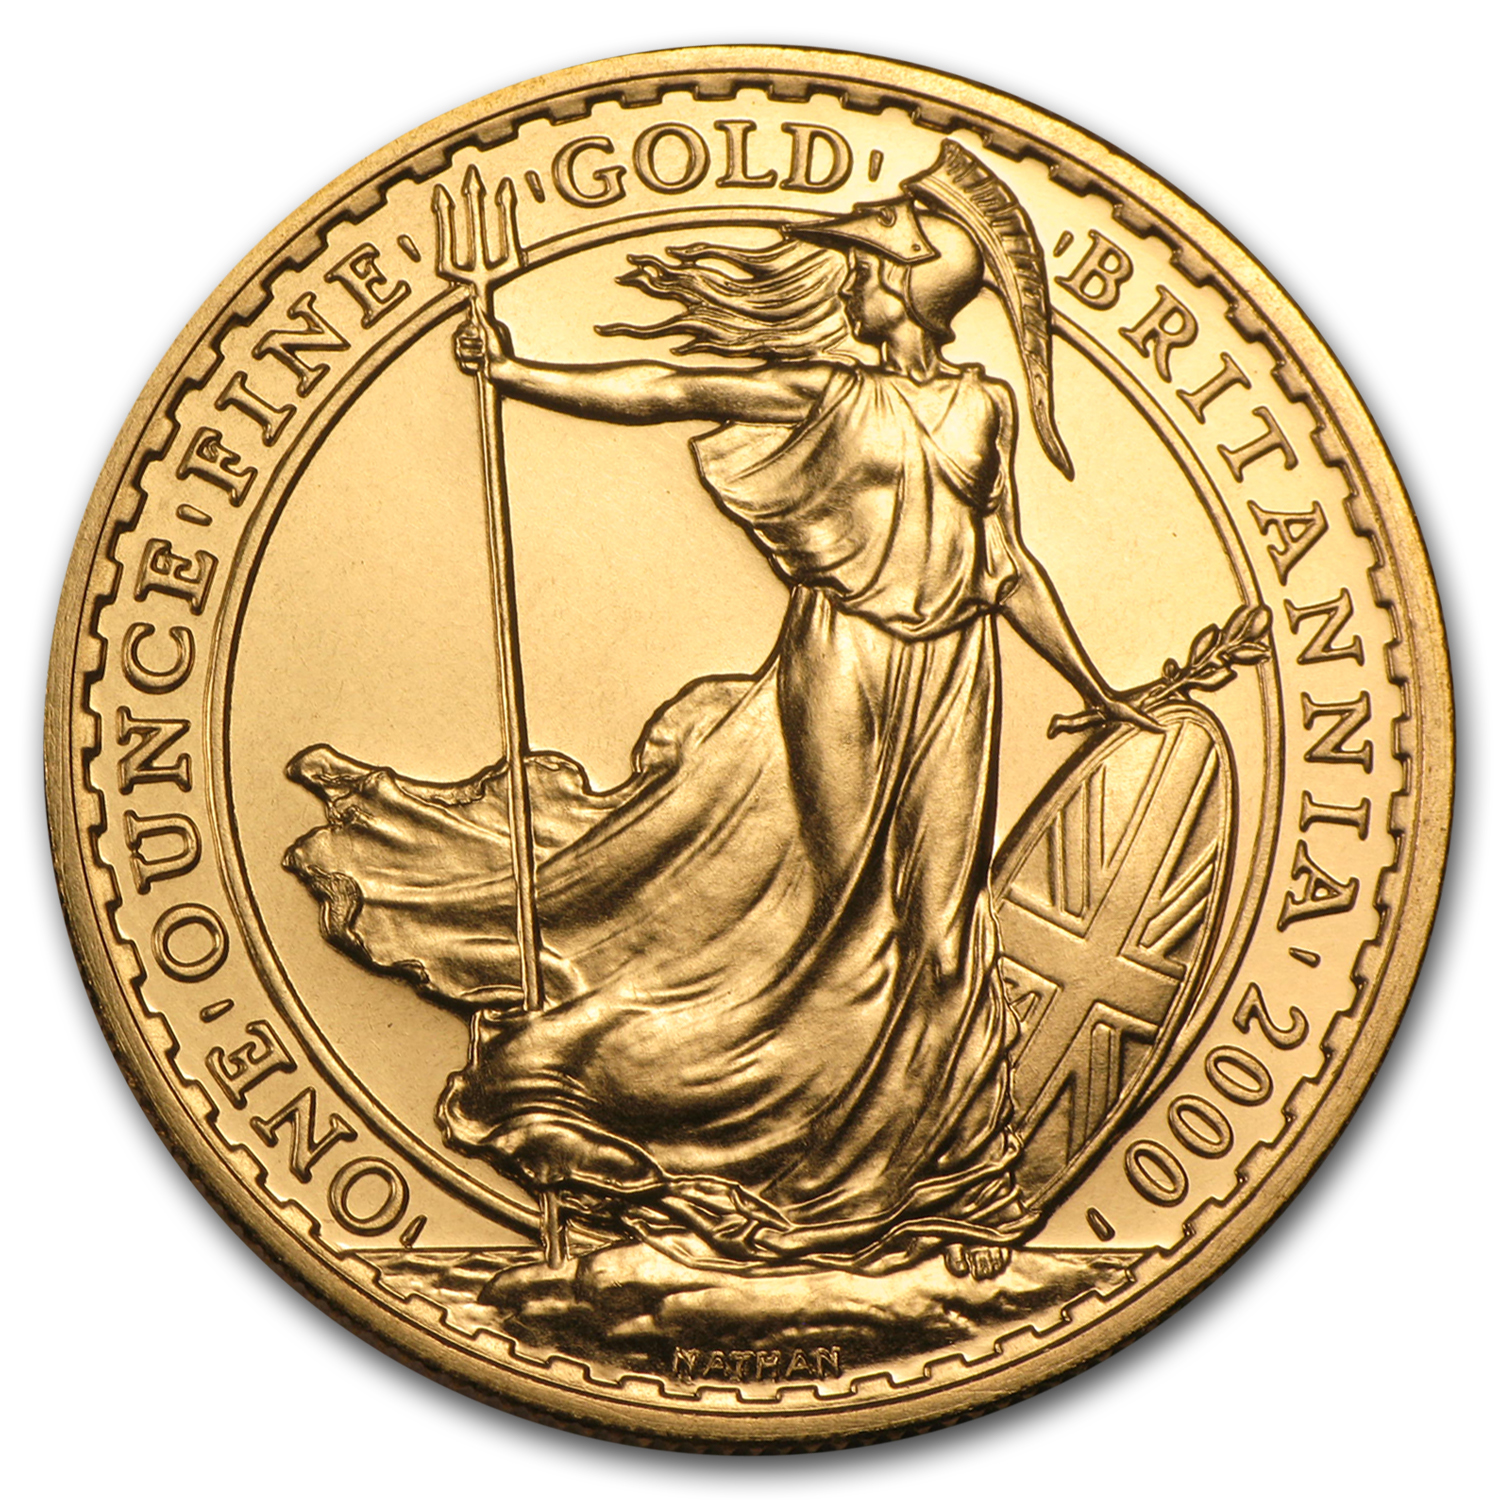 2000 Great Britain 1 oz Gold Britannia BU